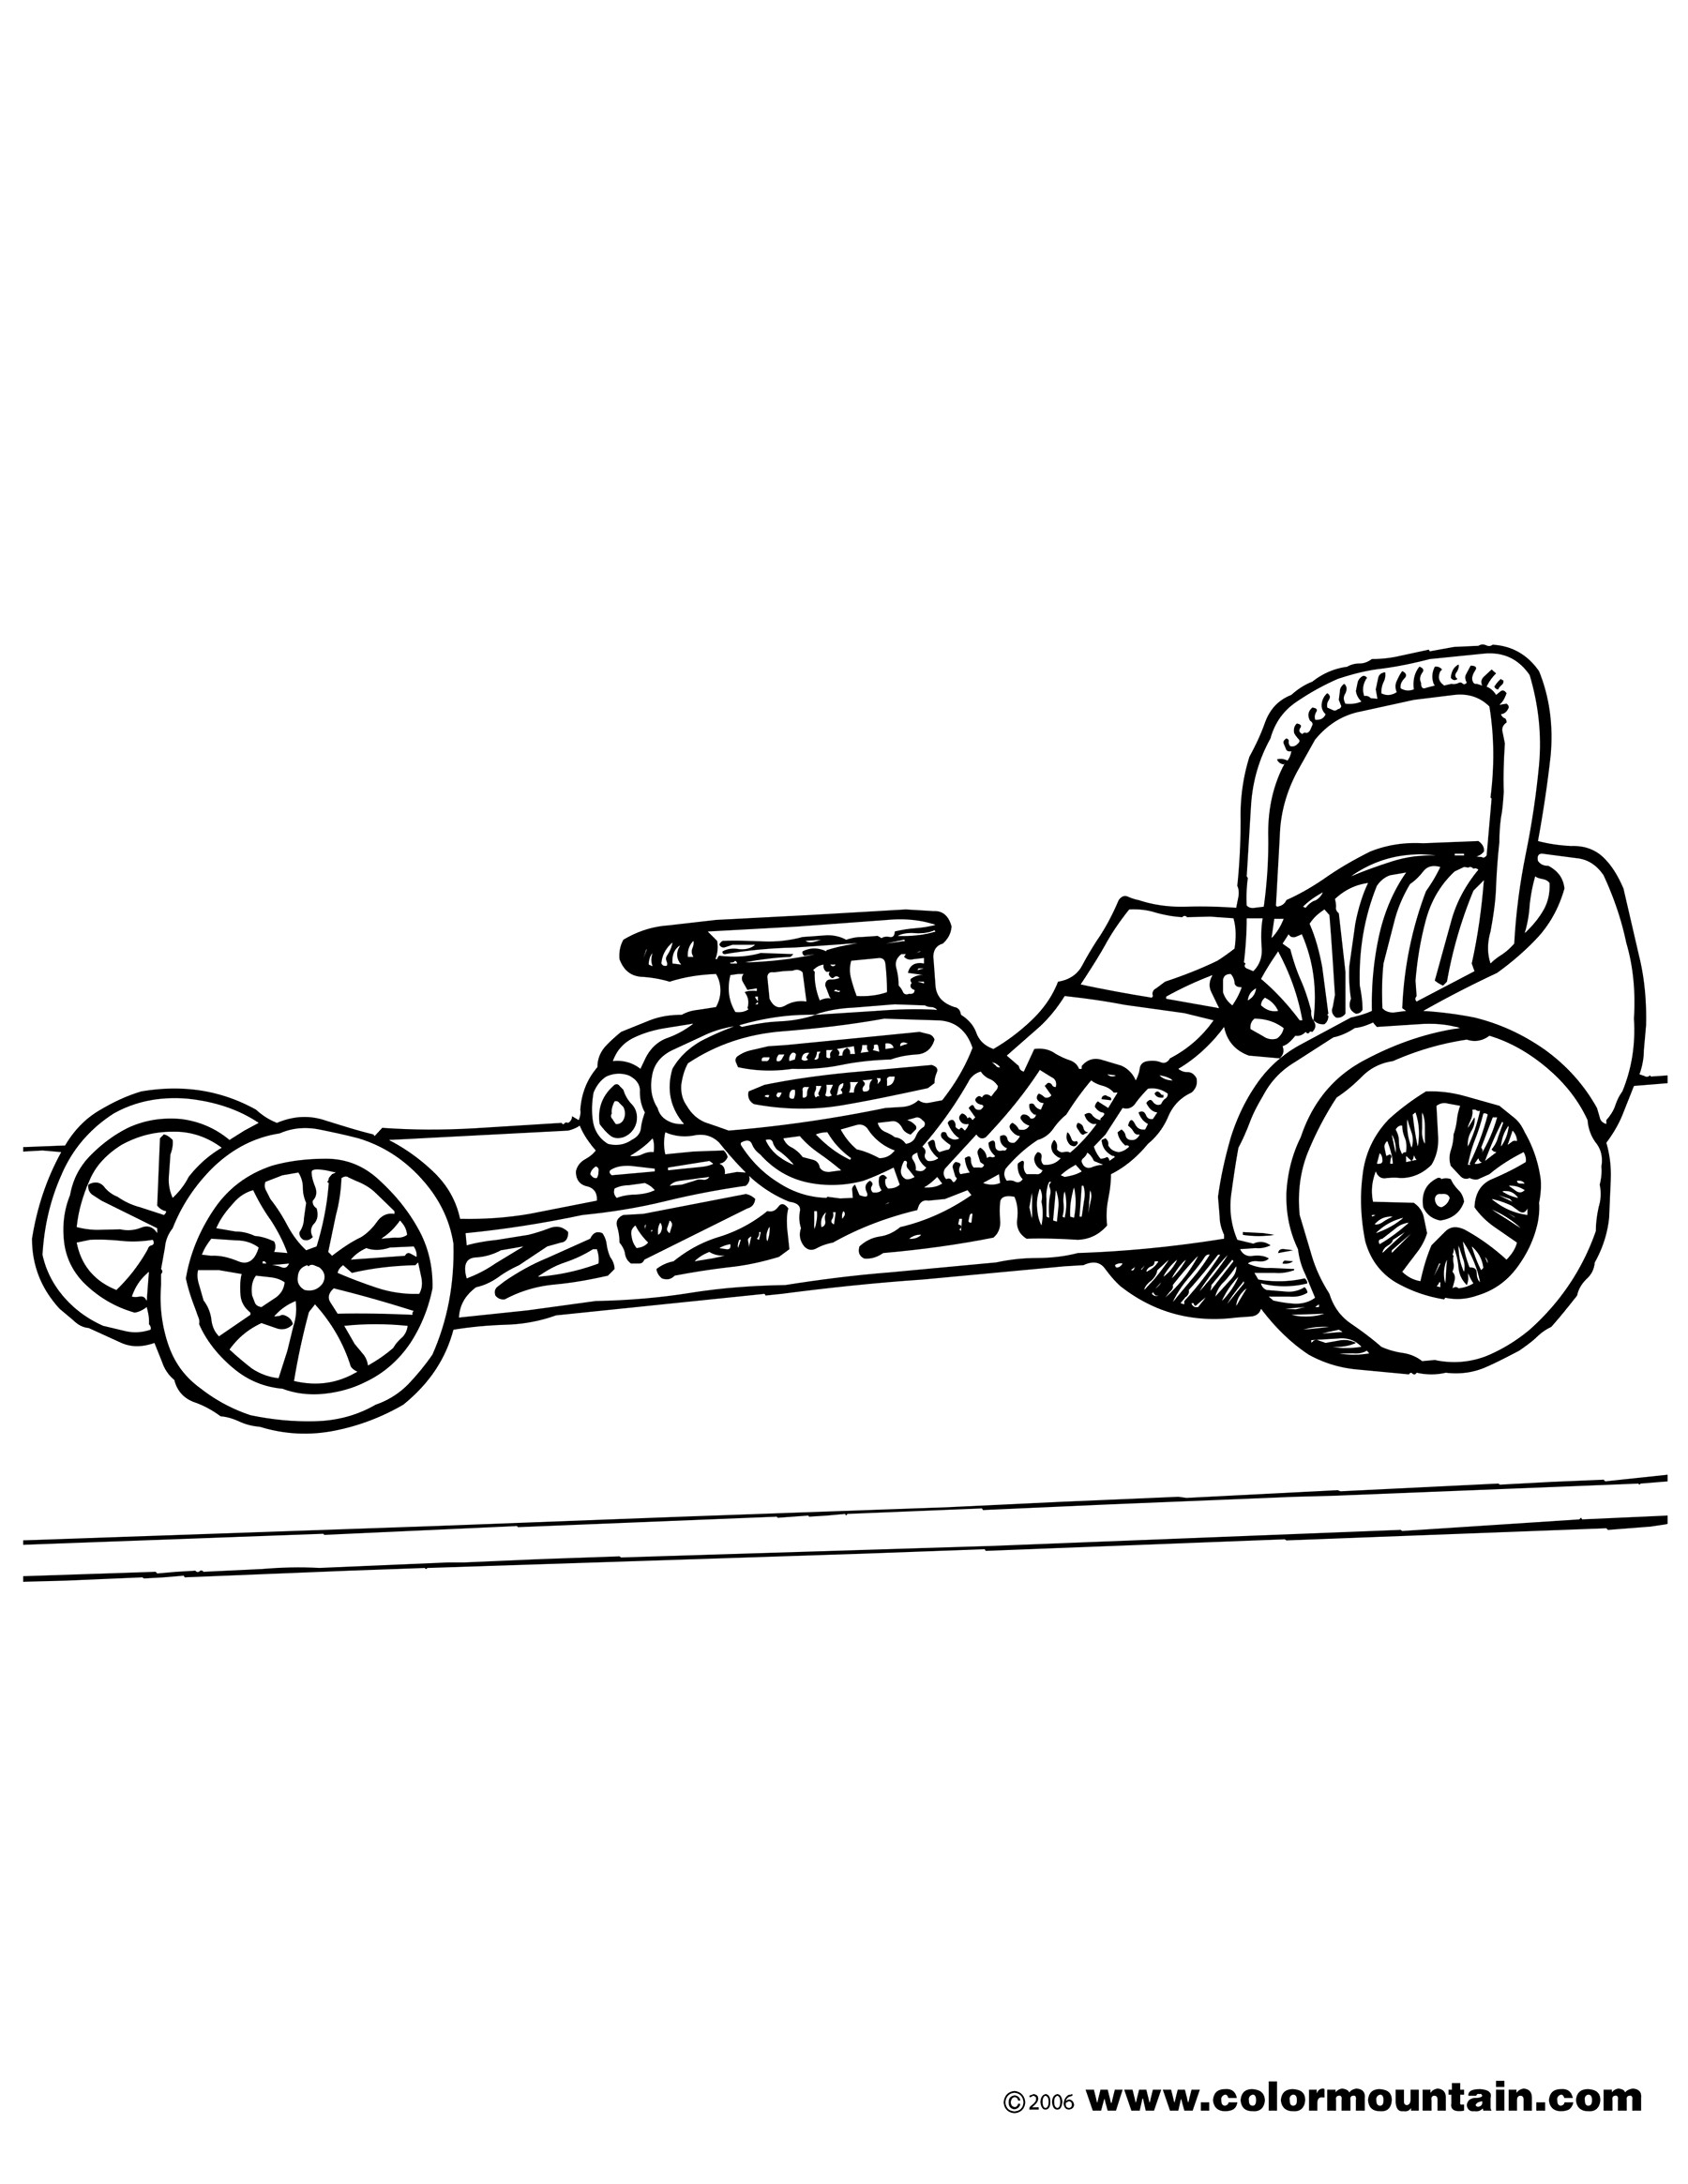 drag car coloring pages free drag racing coloring book pages racer tees car pages coloring drag